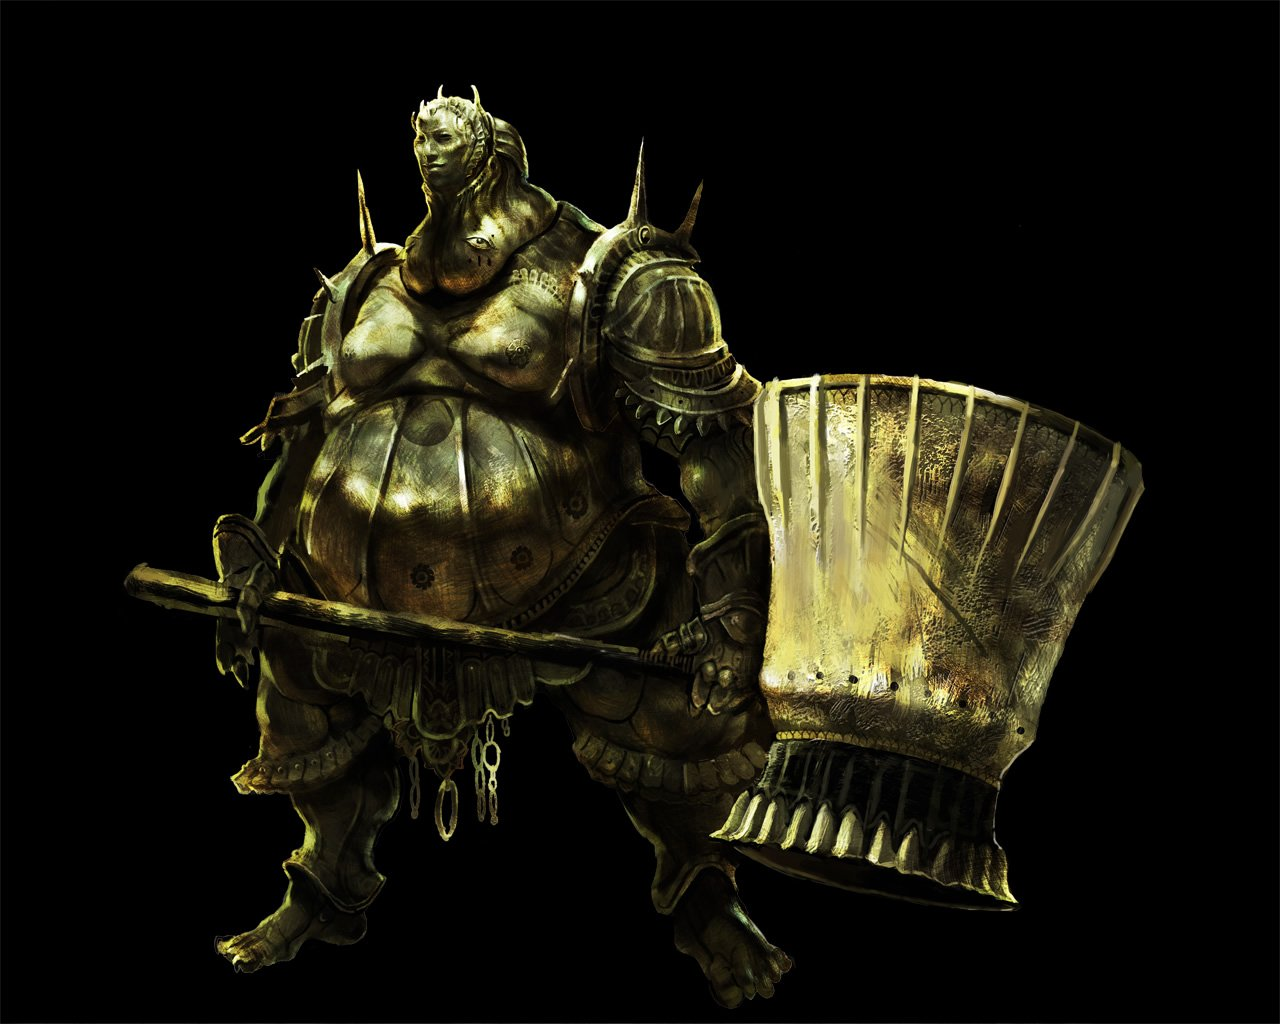 dragon slayer ornstein and executioner smough cheese